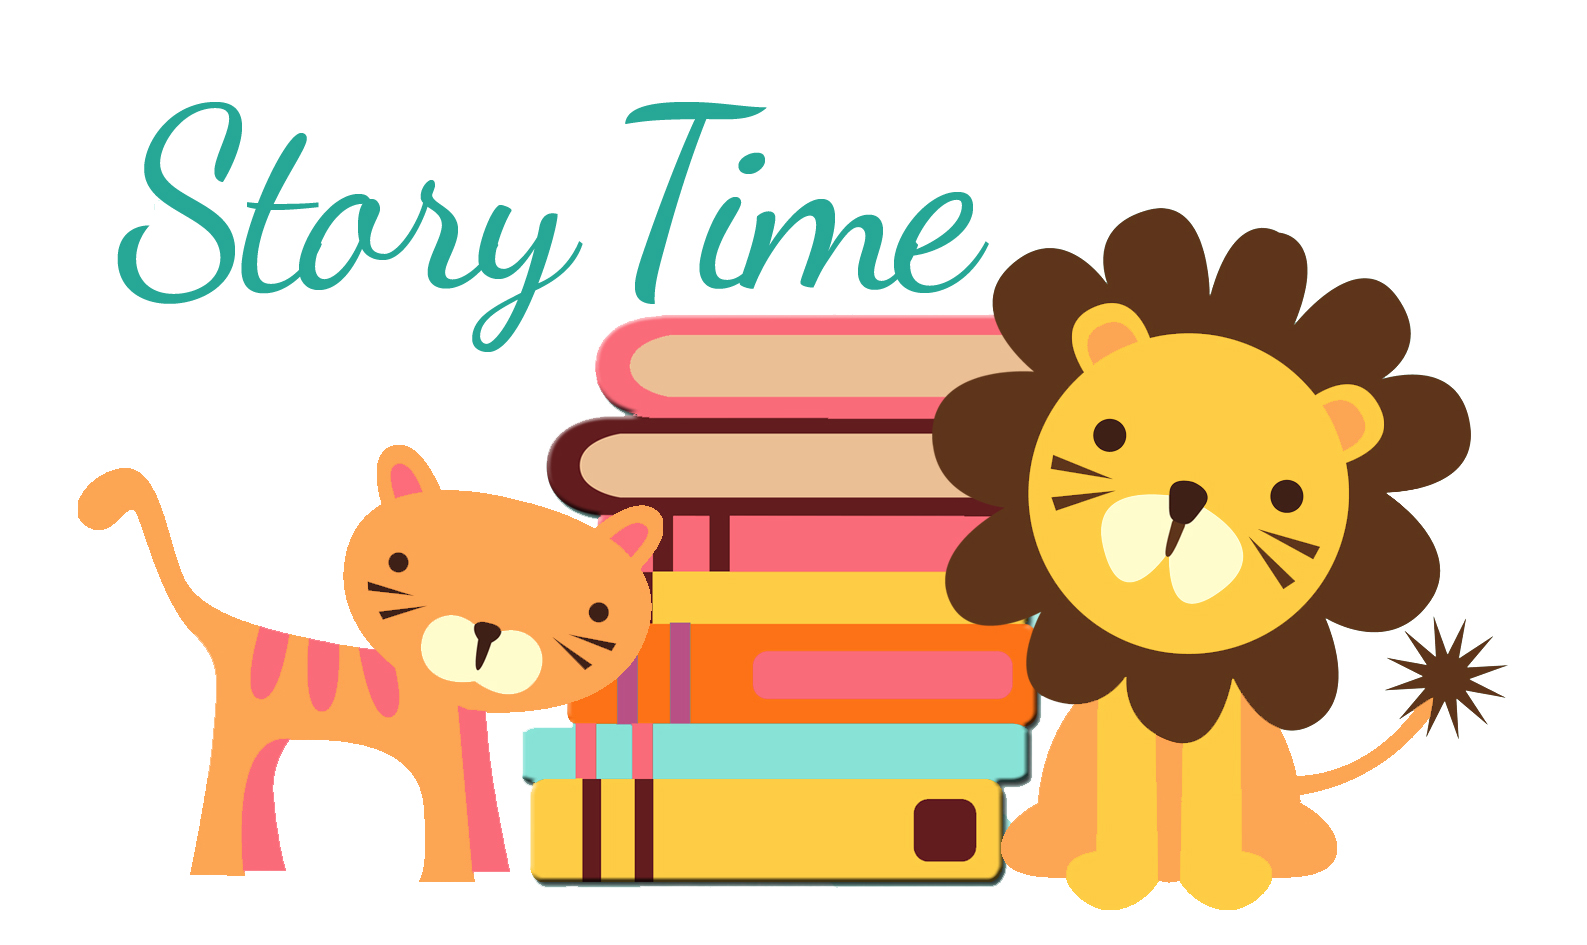 Storytime clipart. Free cliparts download clip